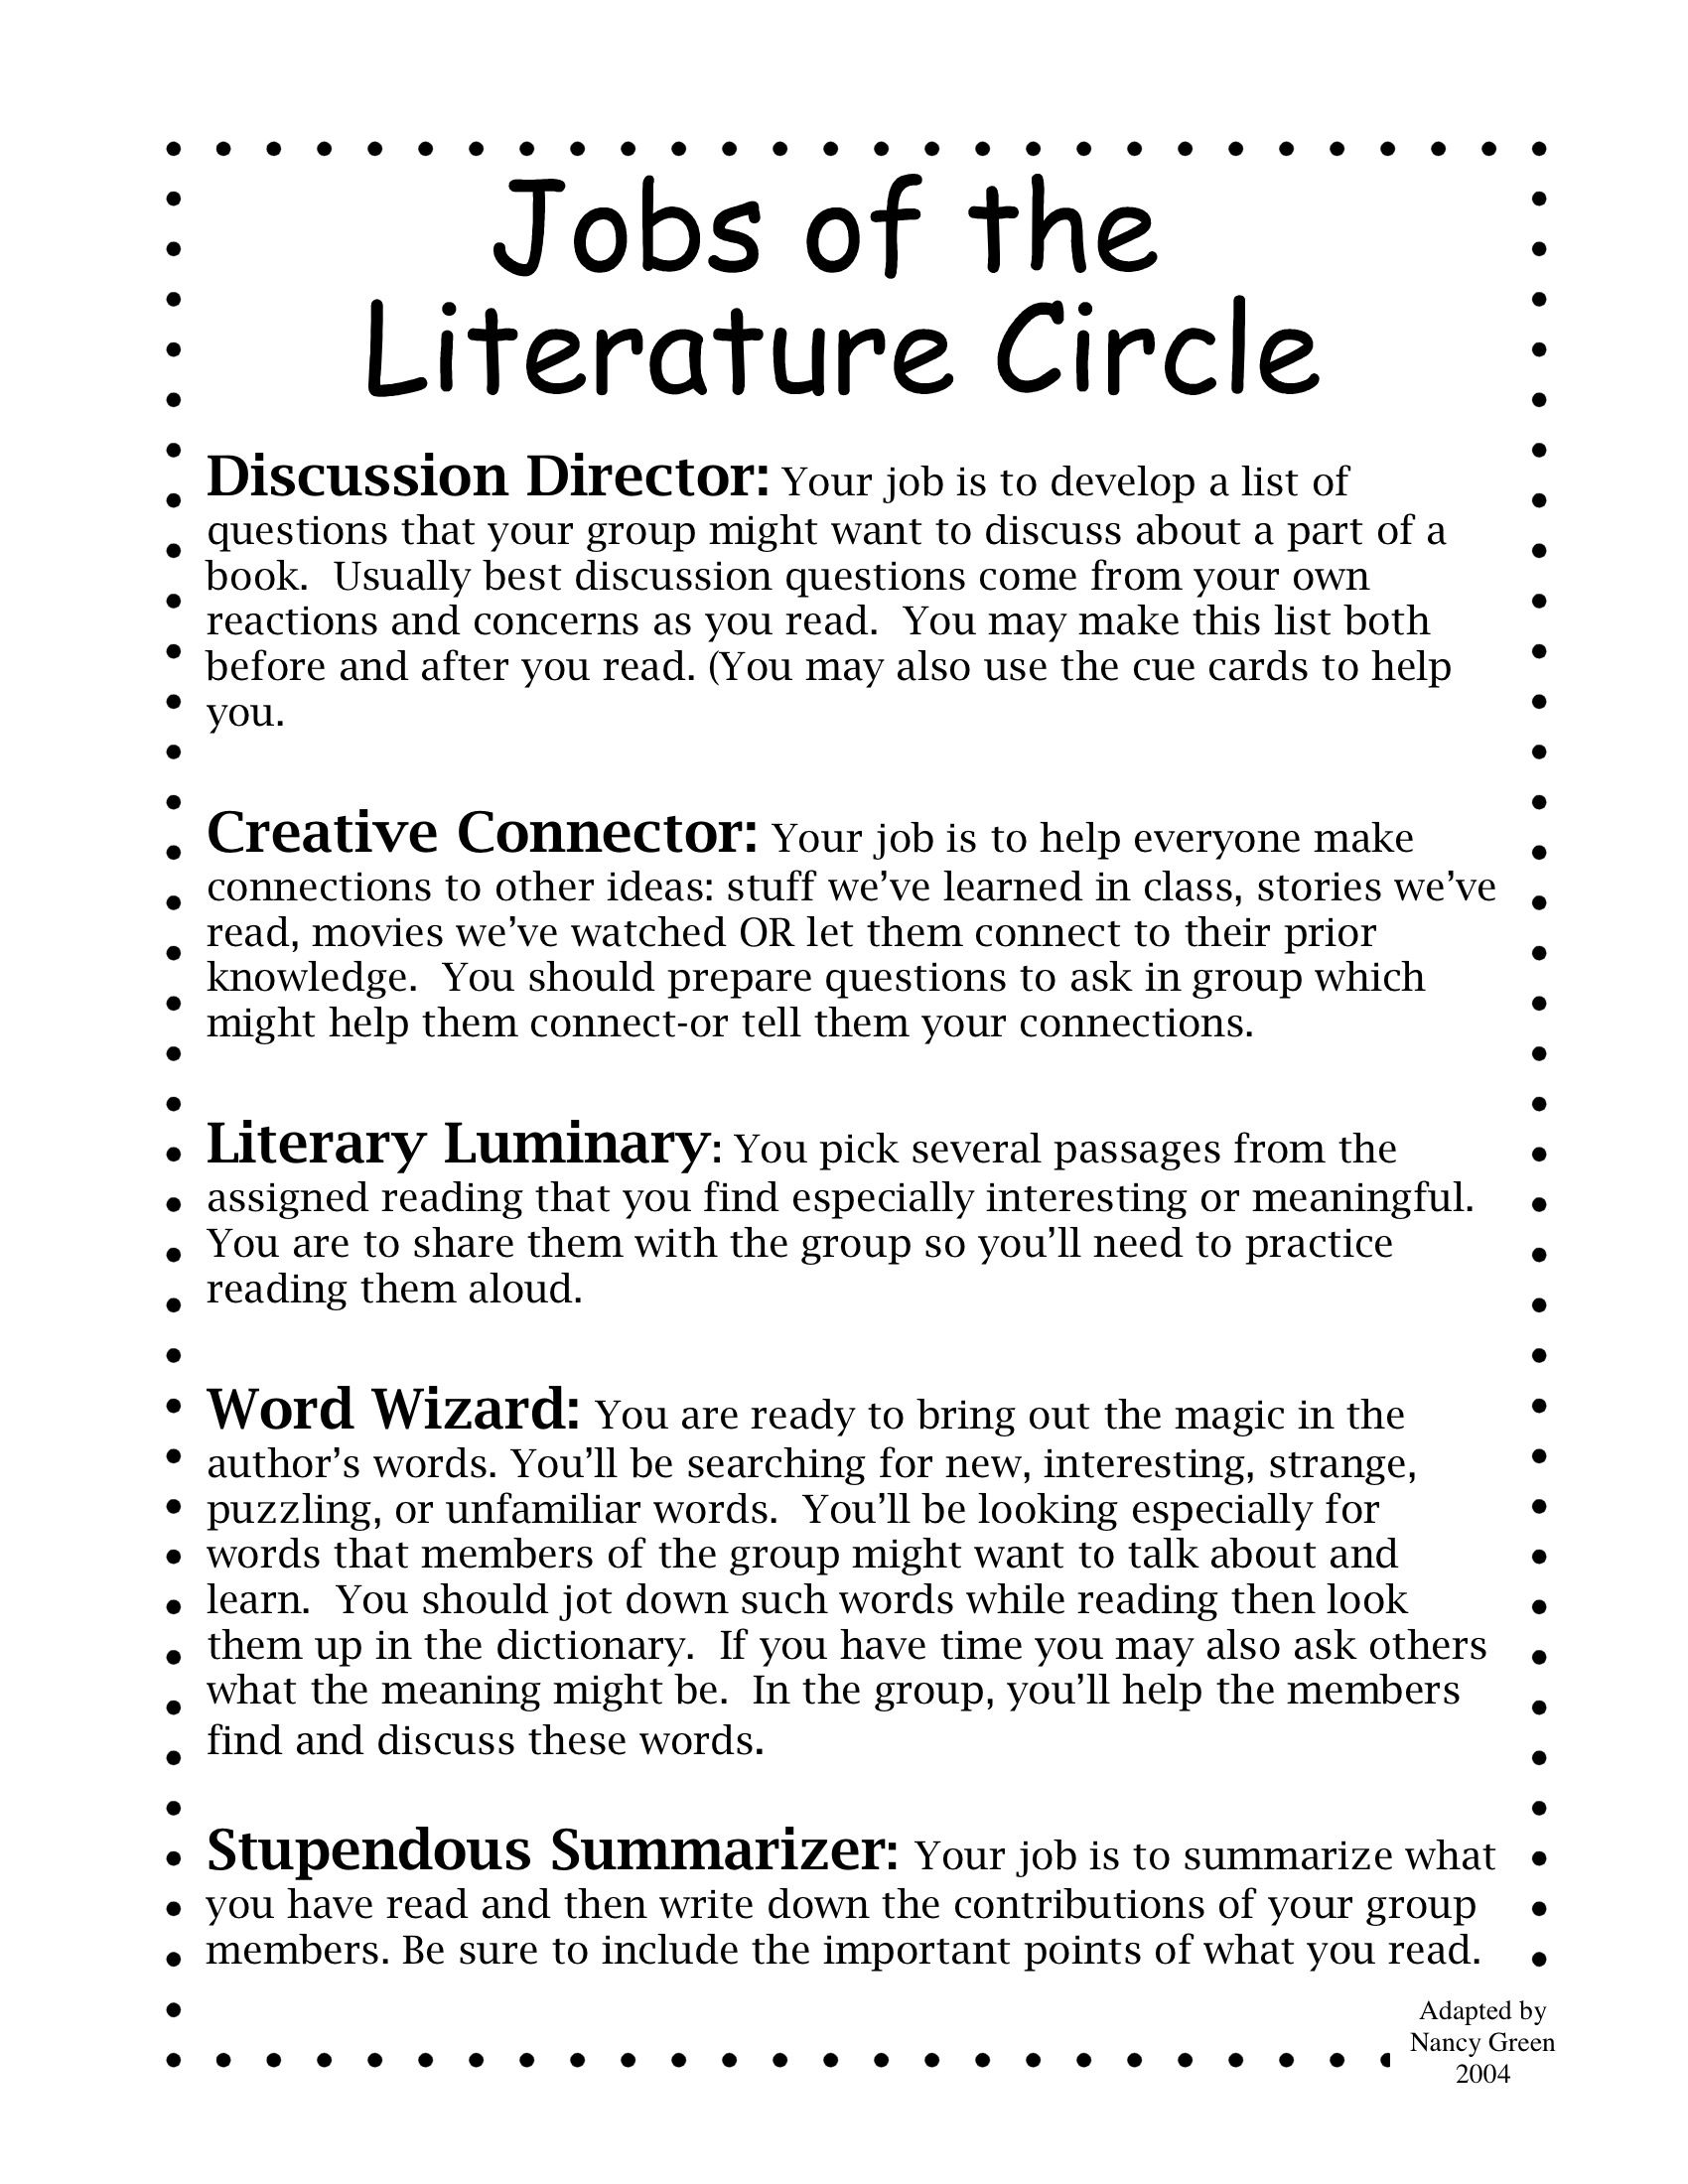 Literature Circle Jobs Stupendous Summarizer Is Better Than Artful Artist